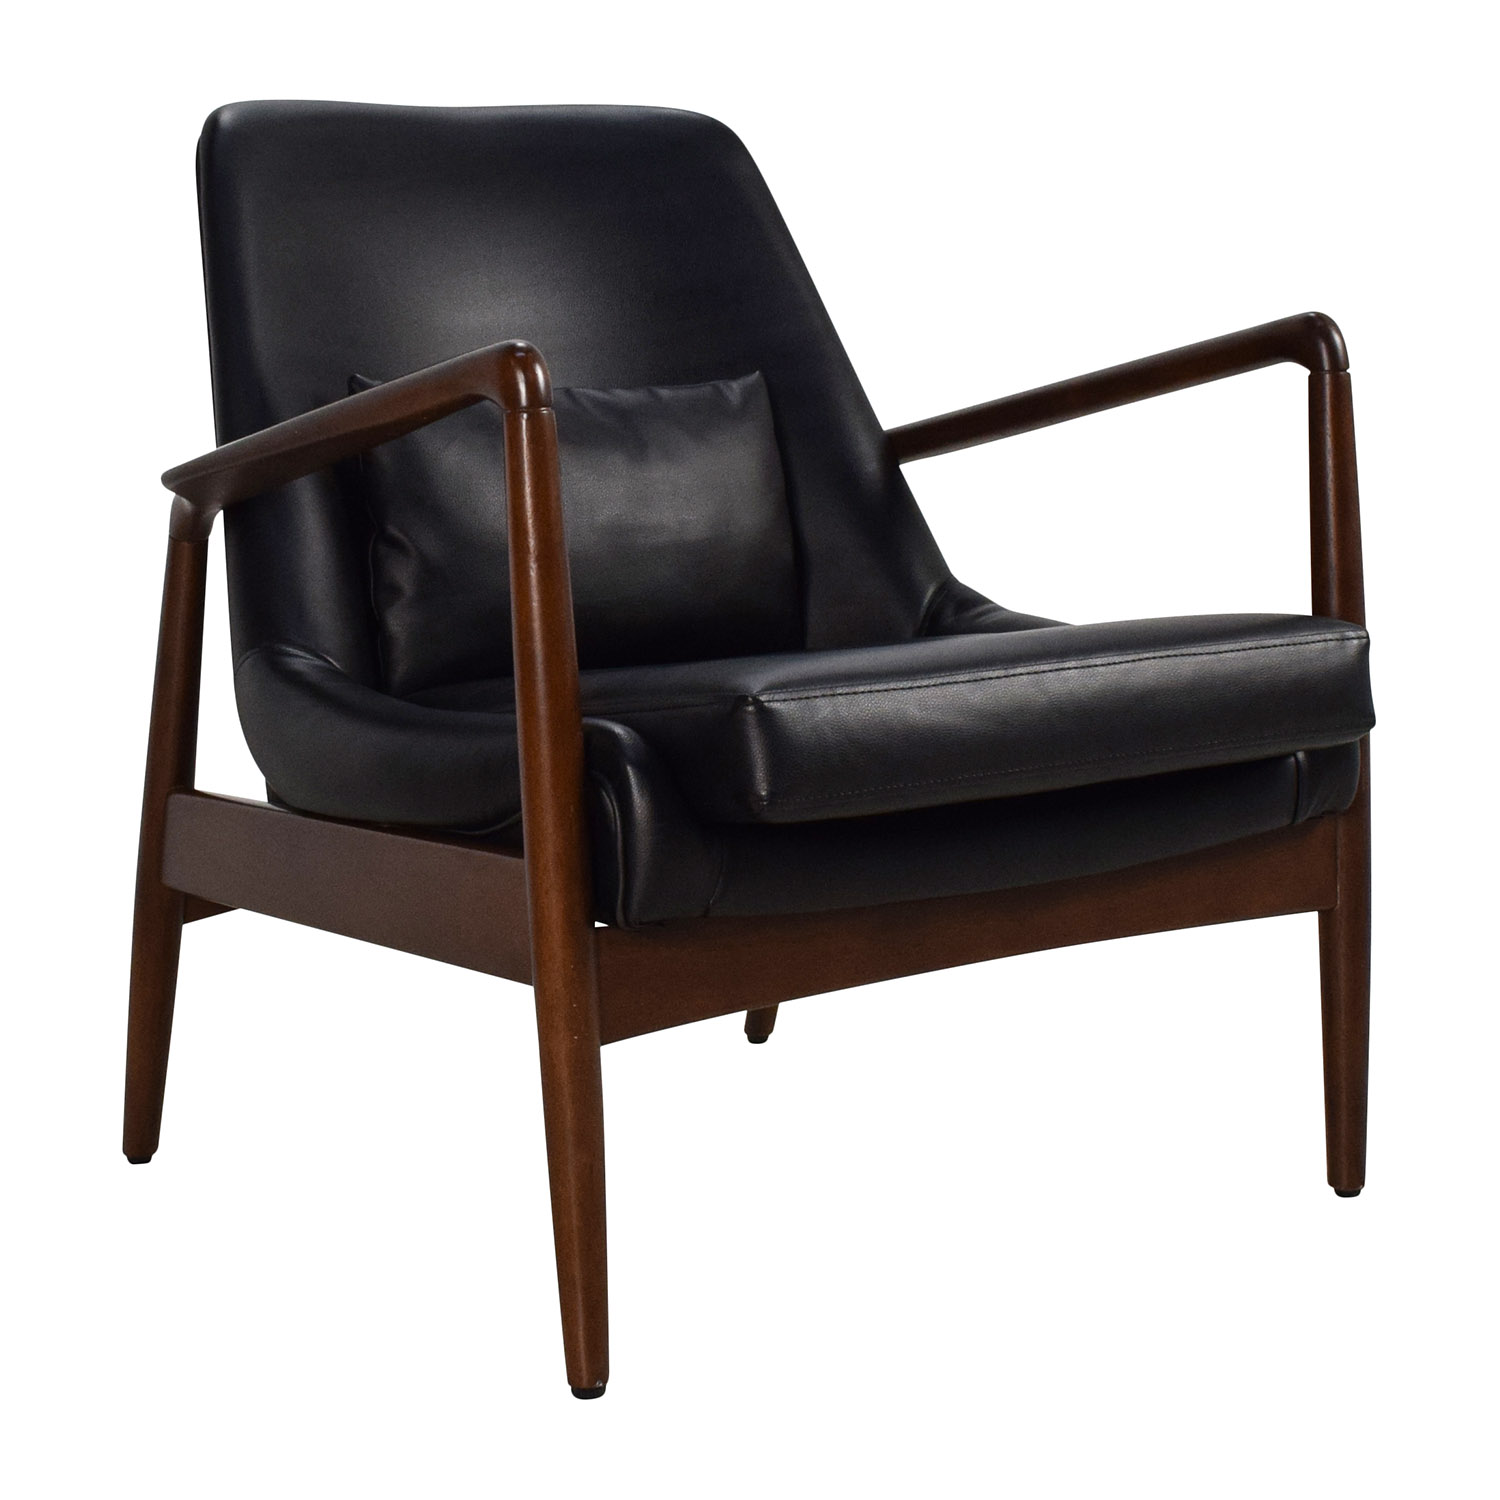 62 OFF  Black Leather Lounge Chair  Chairs